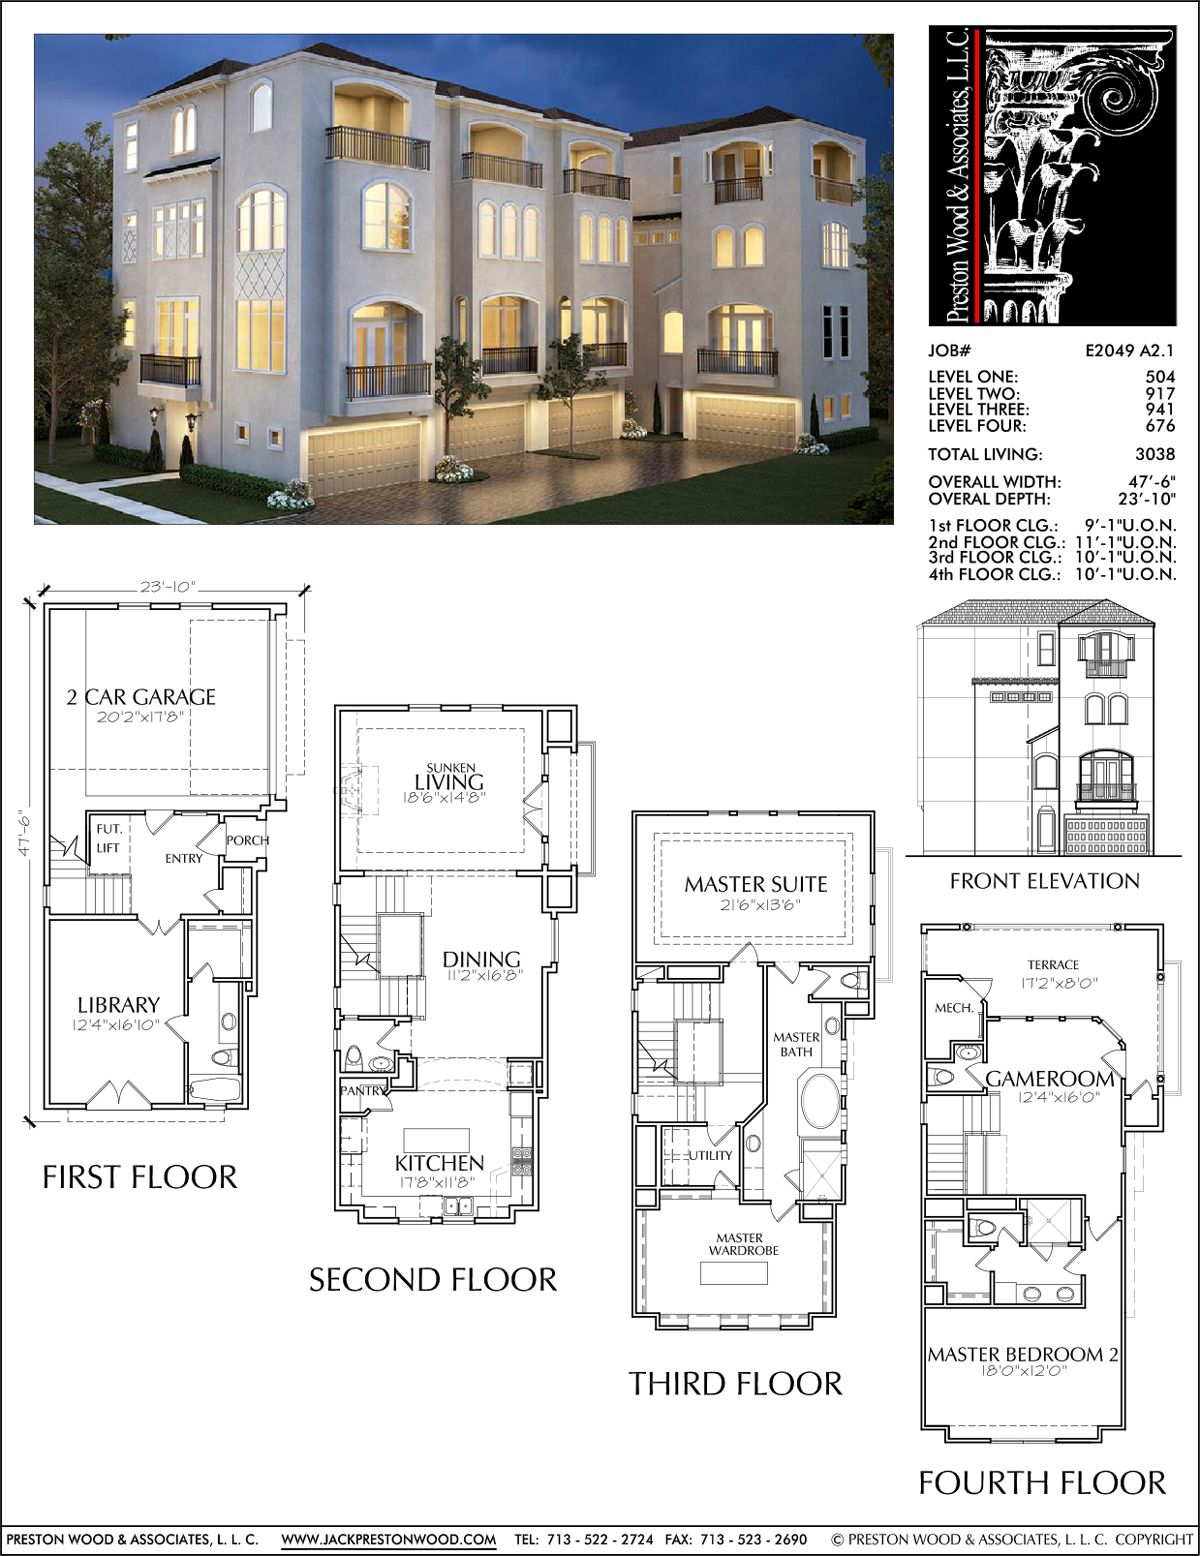 Townhouse plan e2049 a2 1 r c h pinterest for Plans for townhouses